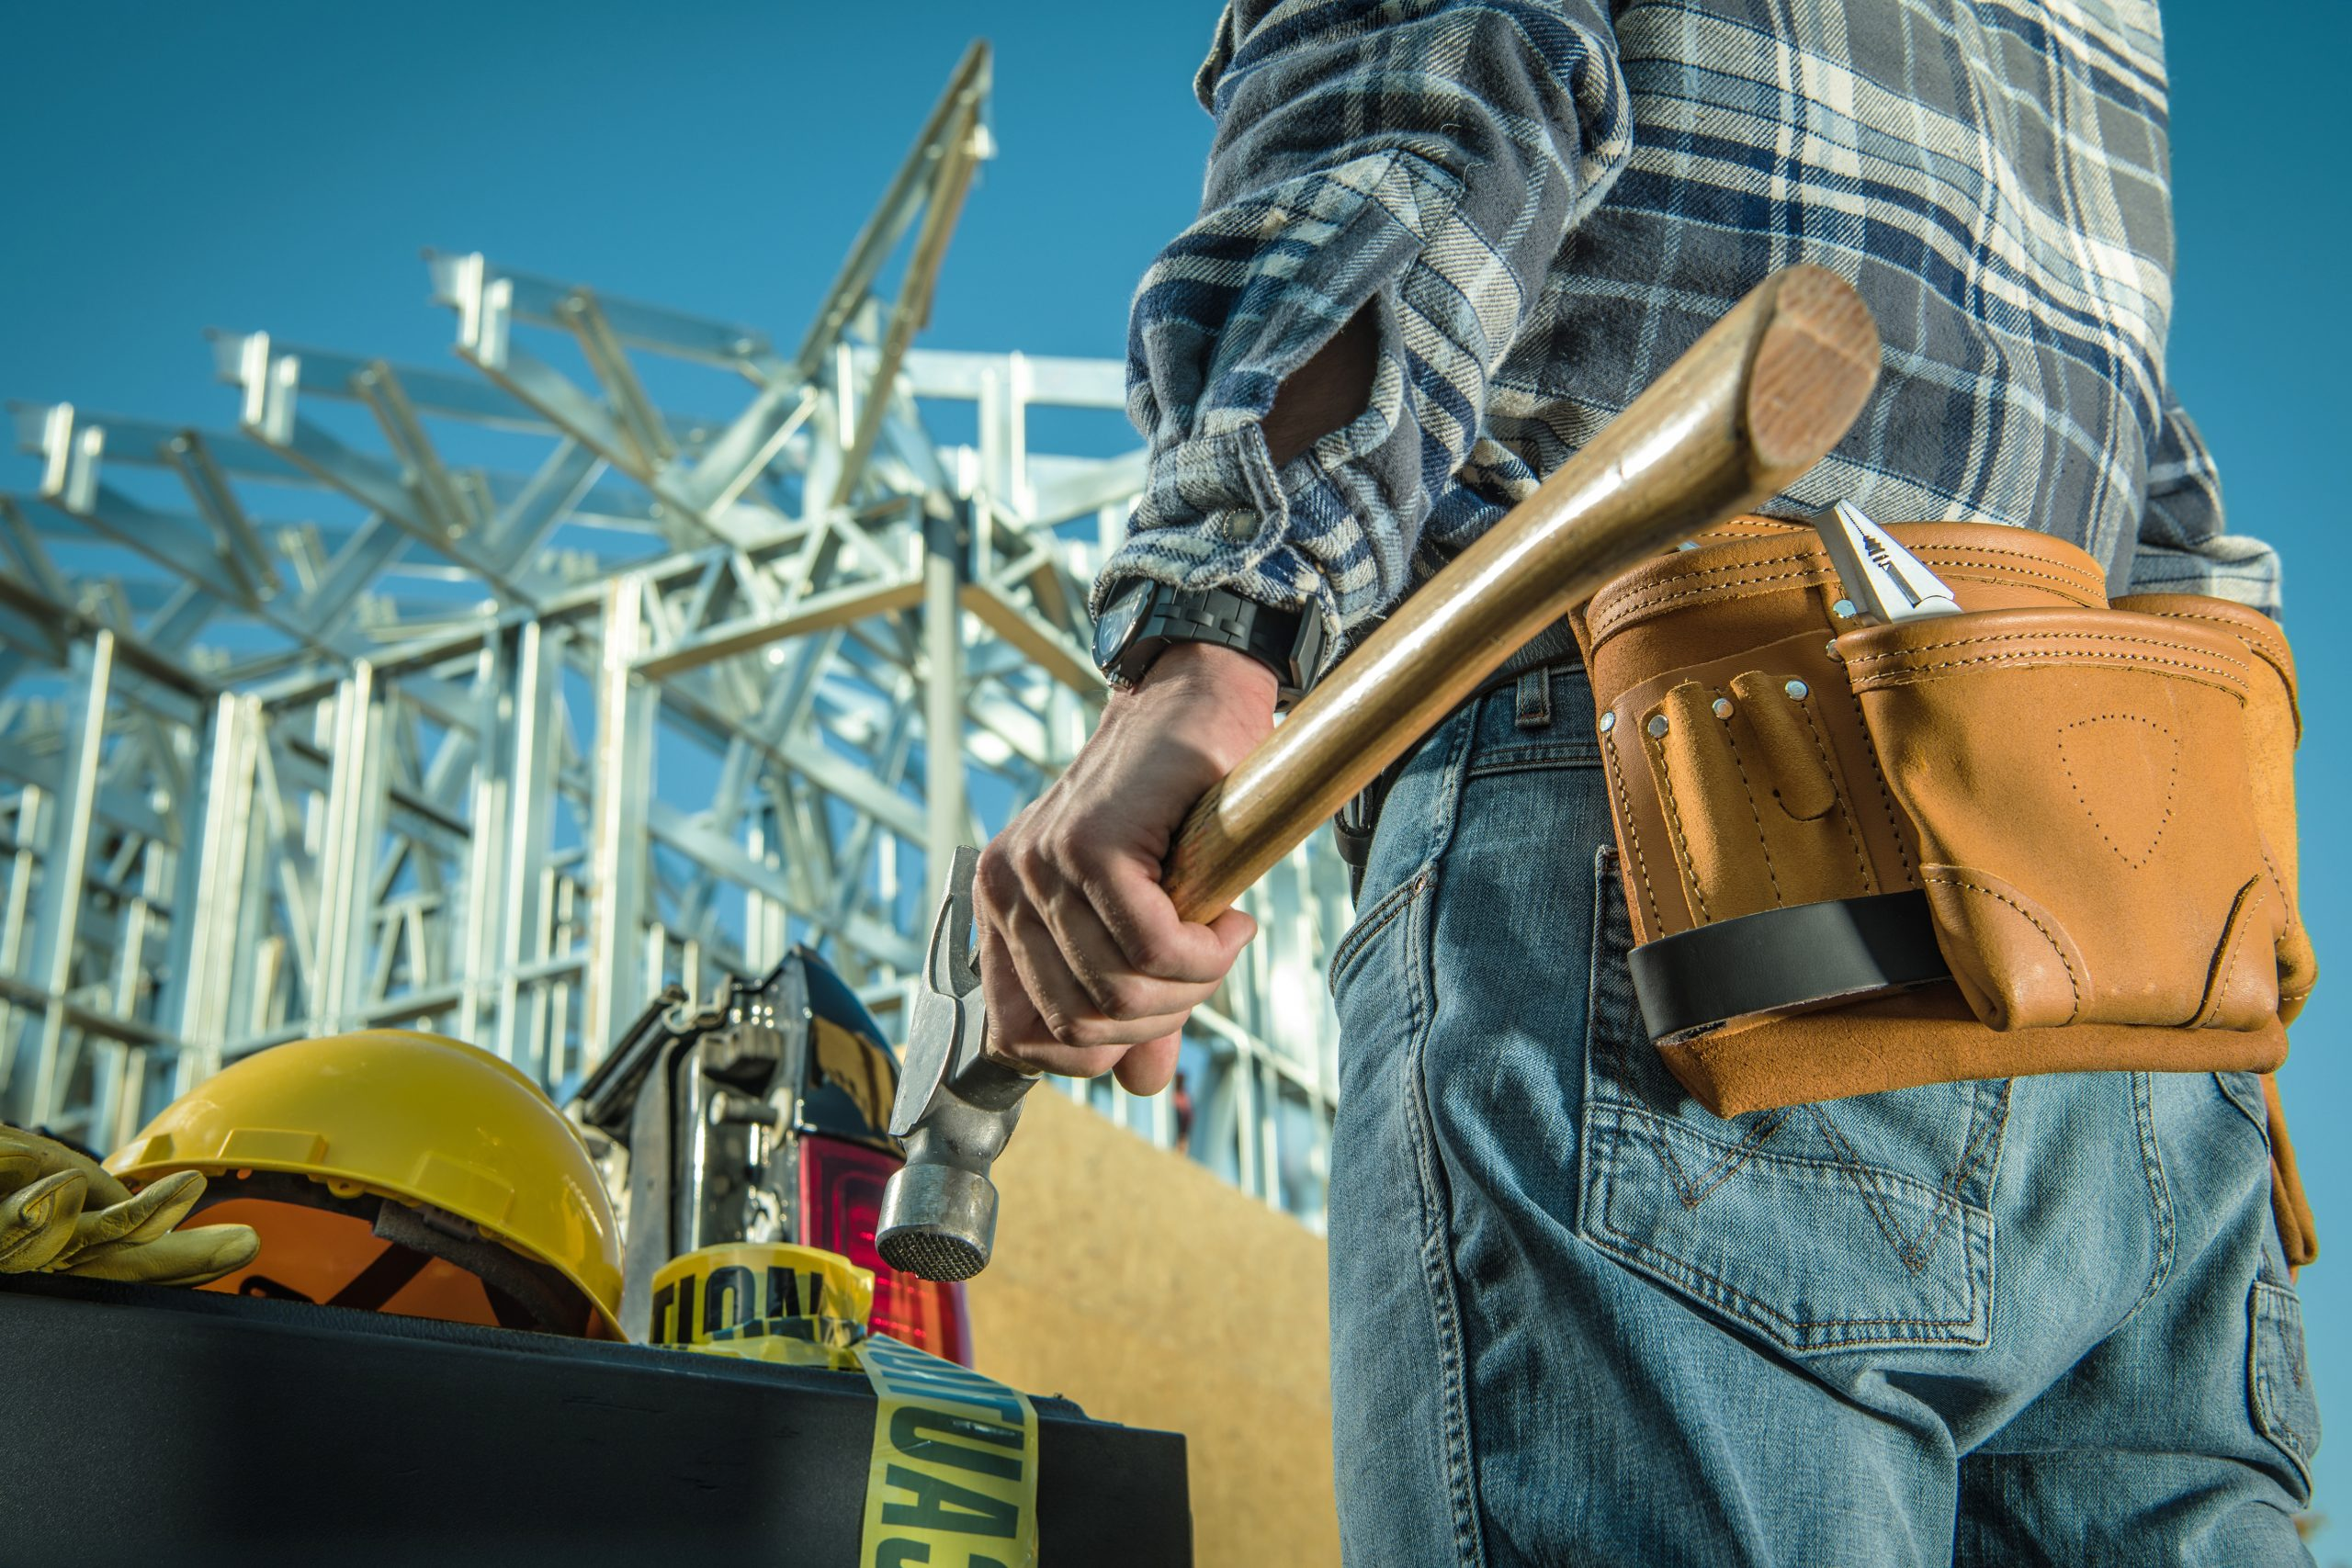 Caucasian Steel Construction Worker with Large Professional Hammer in Front of Construction Site.